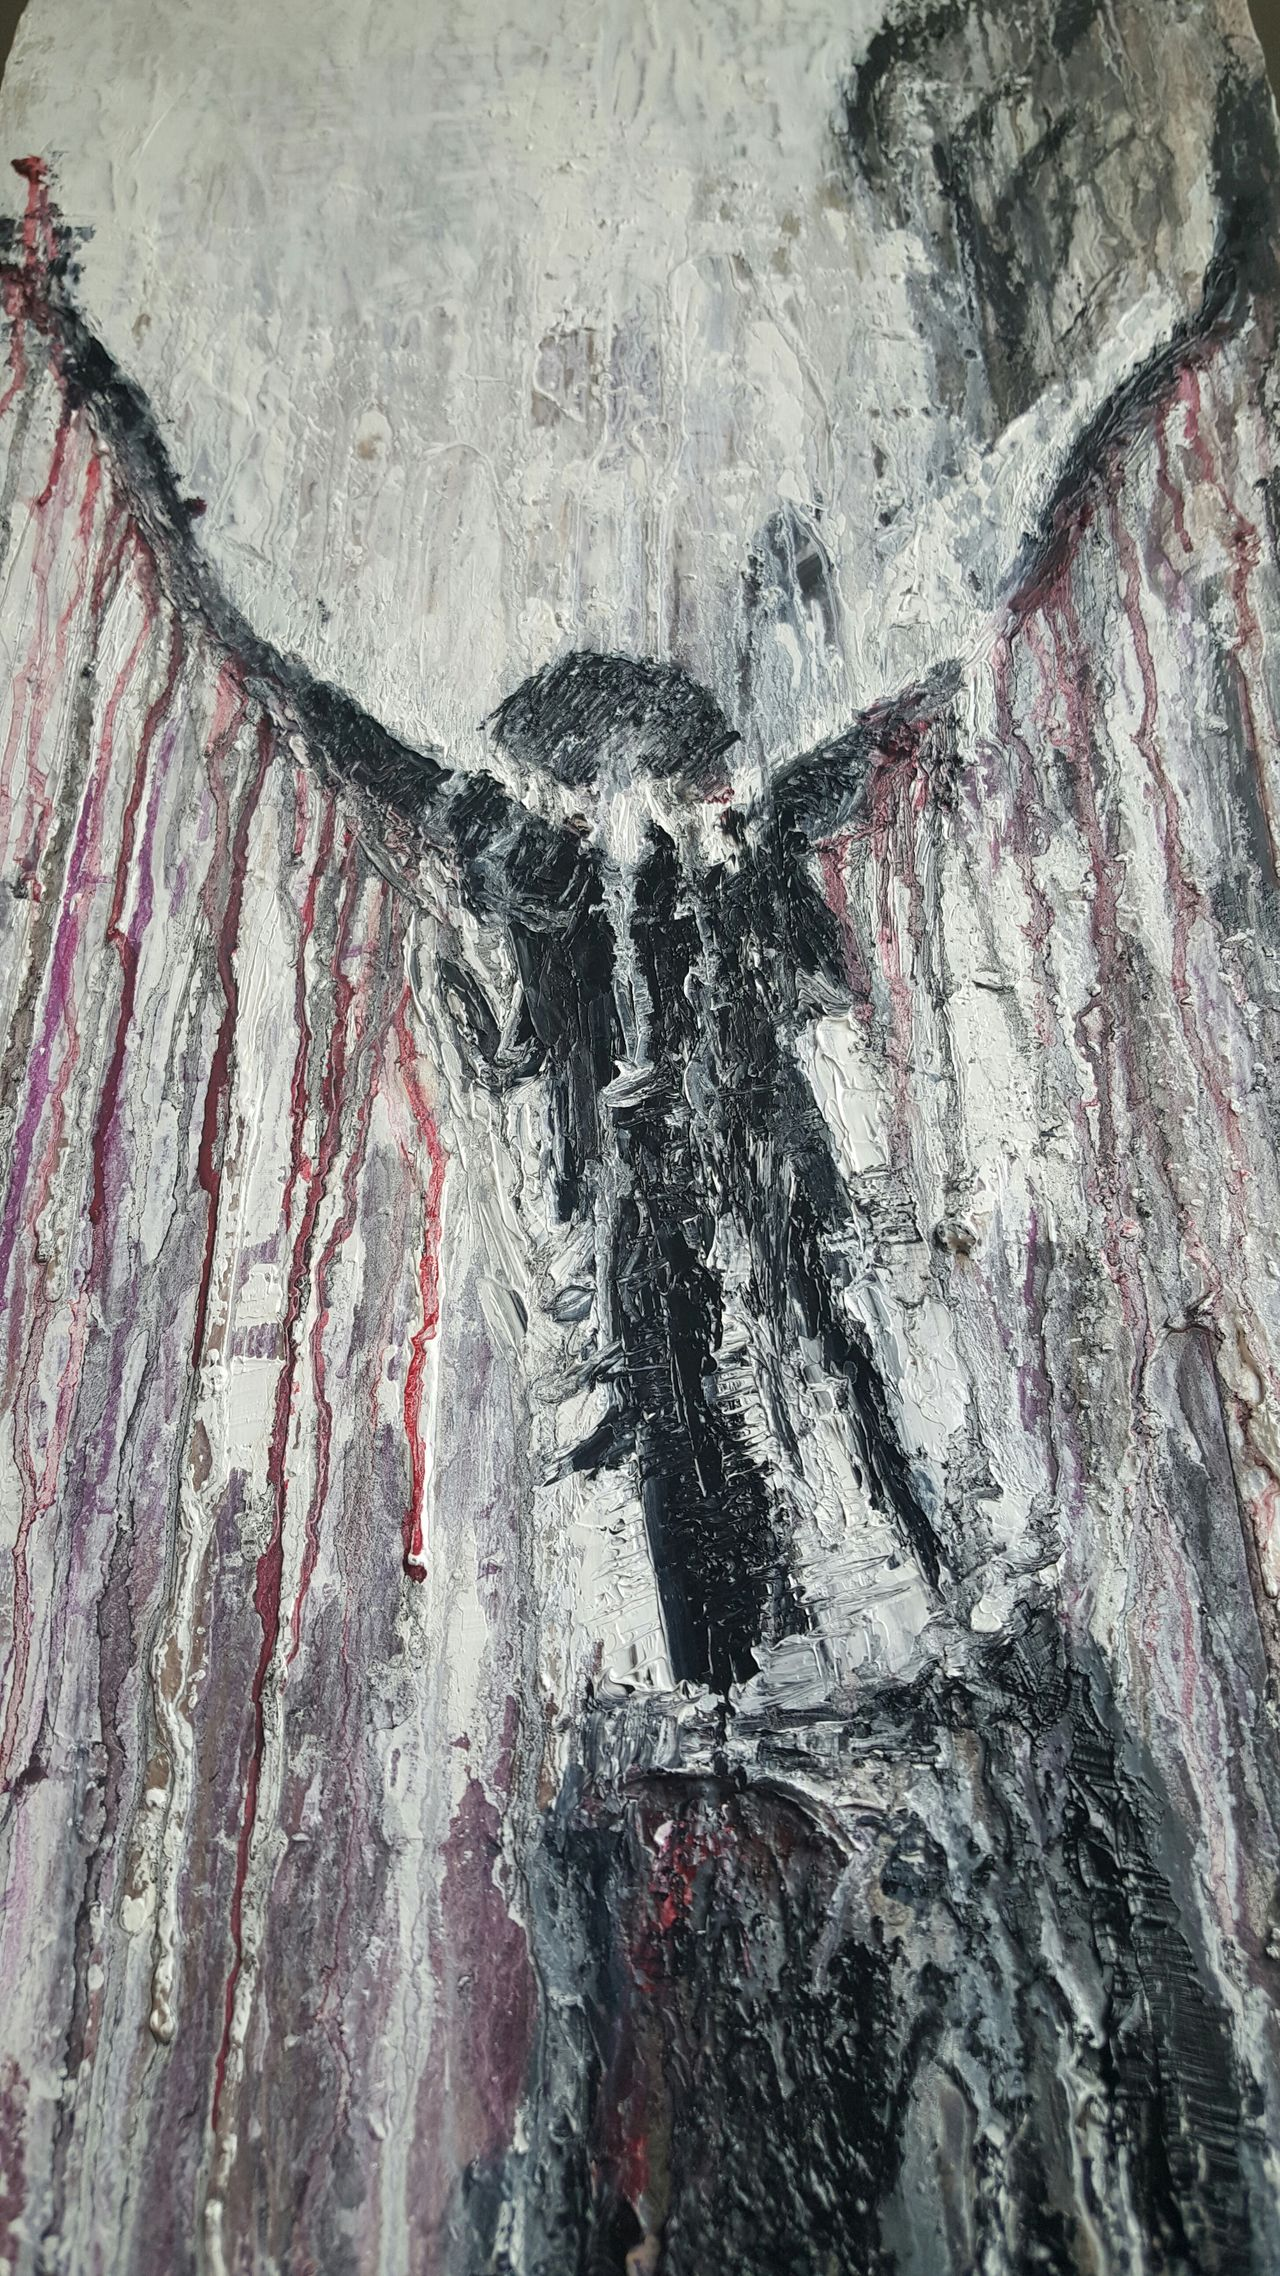 Arise... Oil on canvas..SOLD Art ArtWork Art And Craft Dark Art Dark Artist Artists Paint Oil Painting Impasto Eye4photography  Art, Drawing, Creativity Art Gallery Fine Art Modern Dark Portrait Dark And Light Painterly Painted Pictures Painting